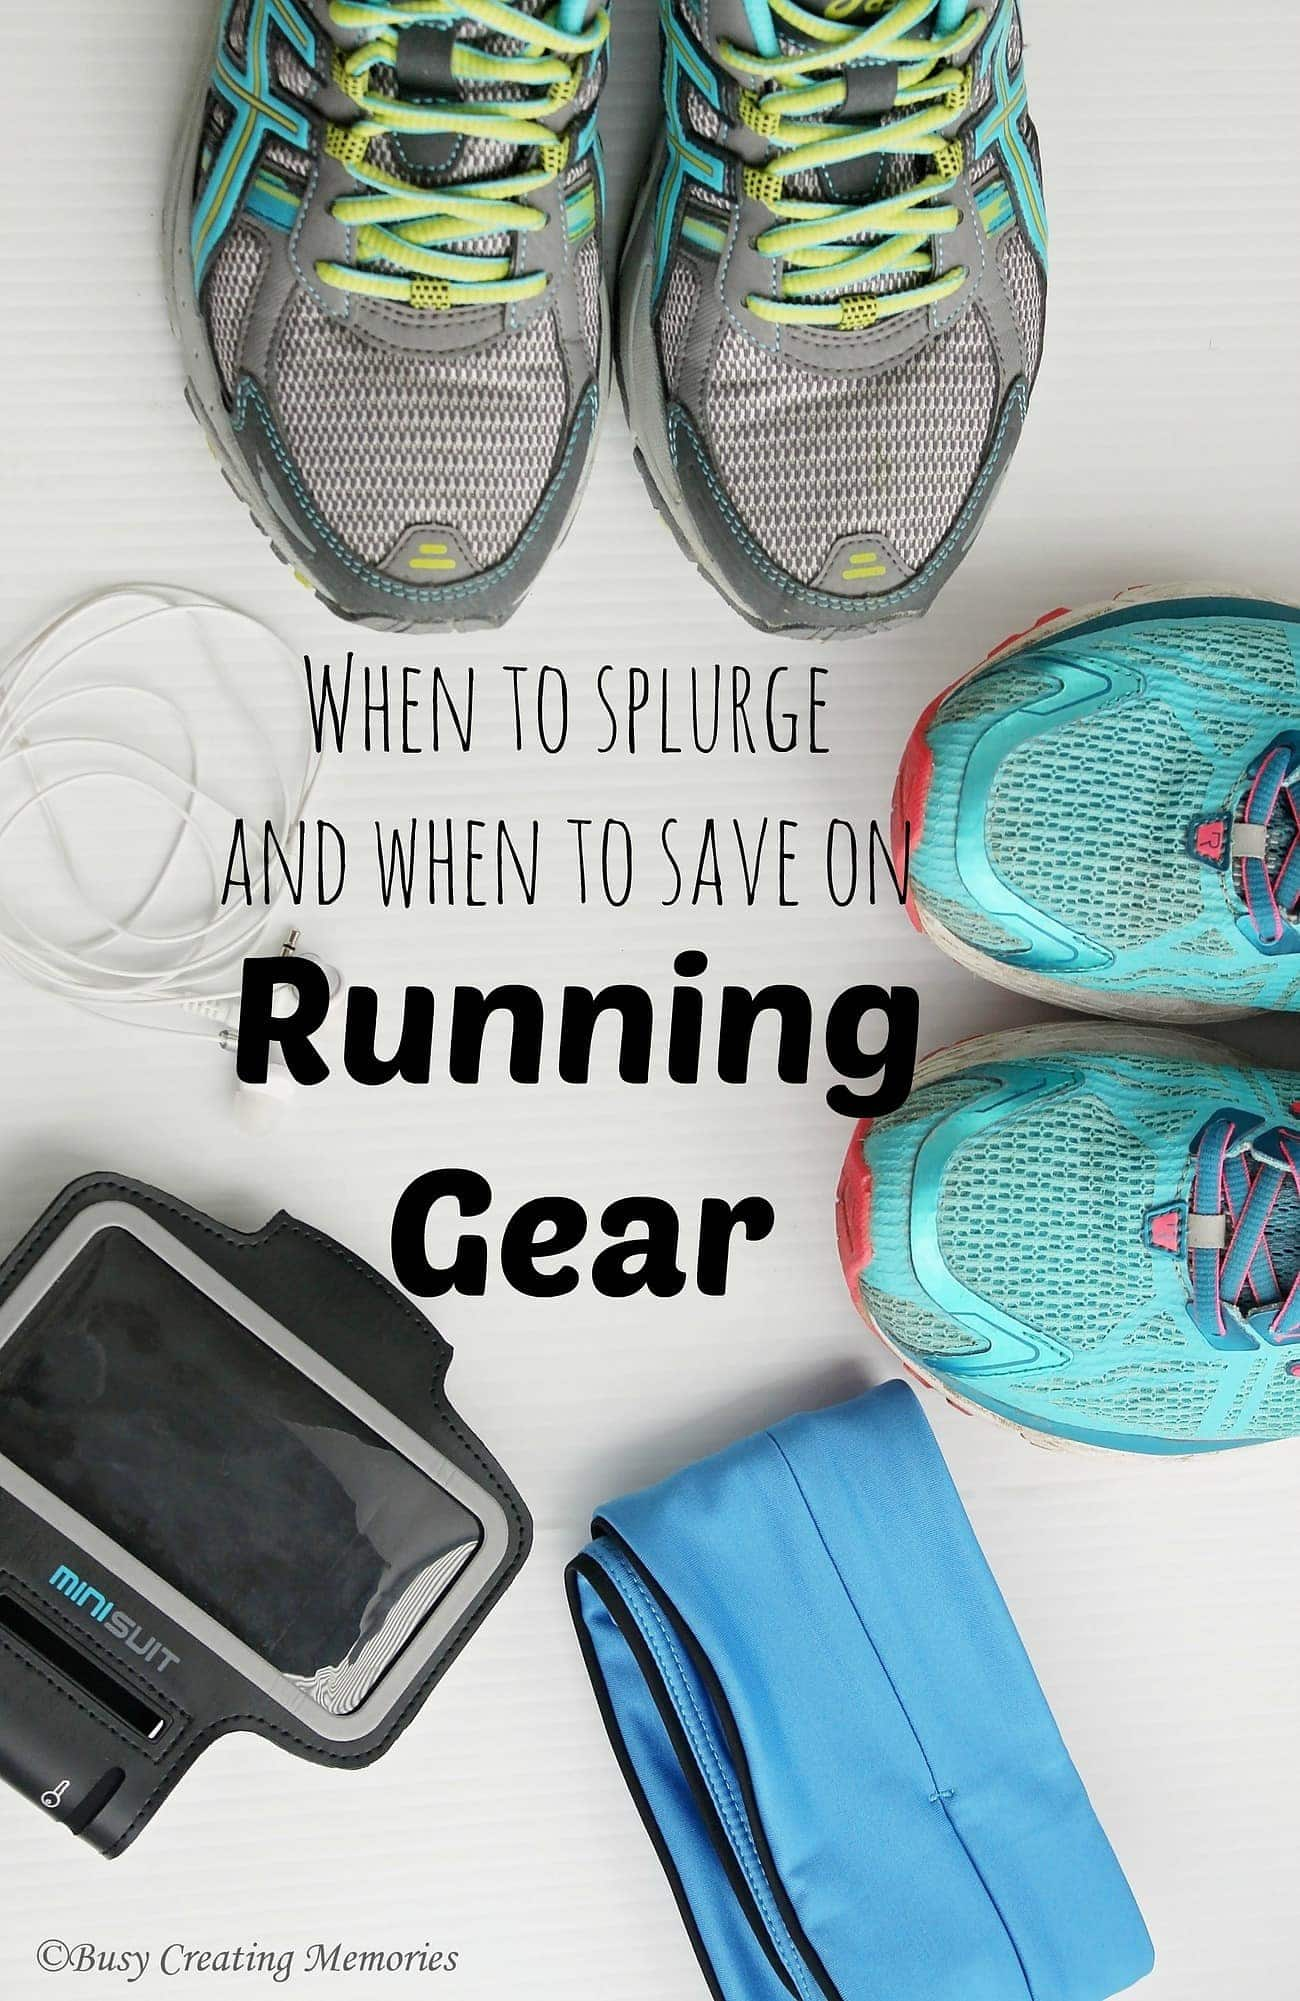 Tips for knowing when to splurge and when to save on running gear